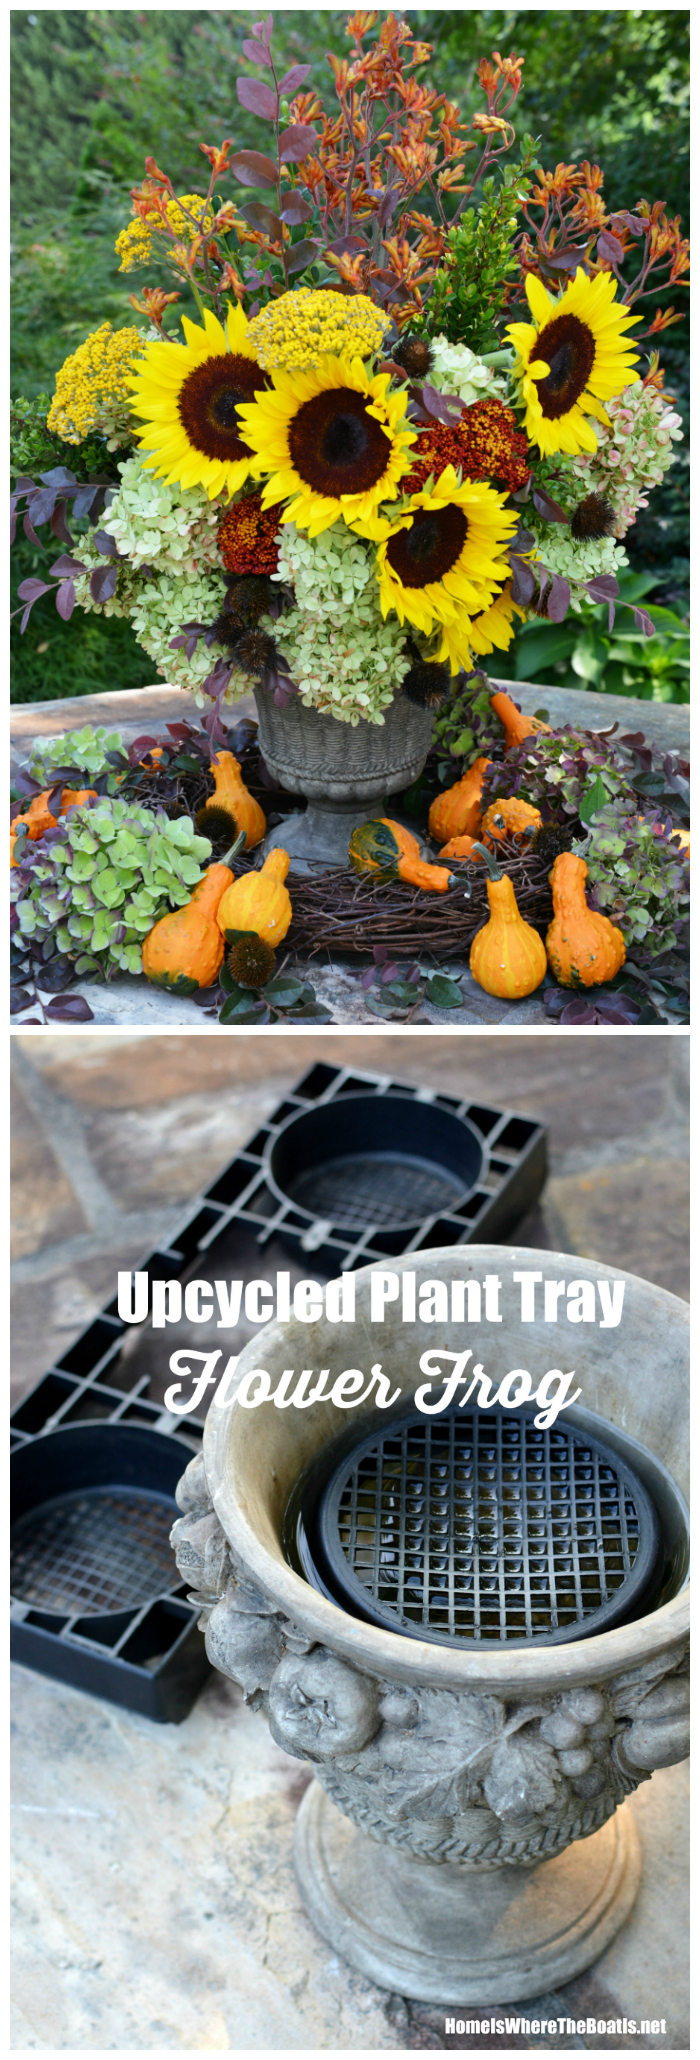 Flower Arranging Hack: Garden Center Plant Tray repurposed as a Flower Frog for easy flower arranging! | ©homeiswhereboatis.net #hack #flowerarranging #upcycle #fall #arrangement #sunflowers #hydrangeas